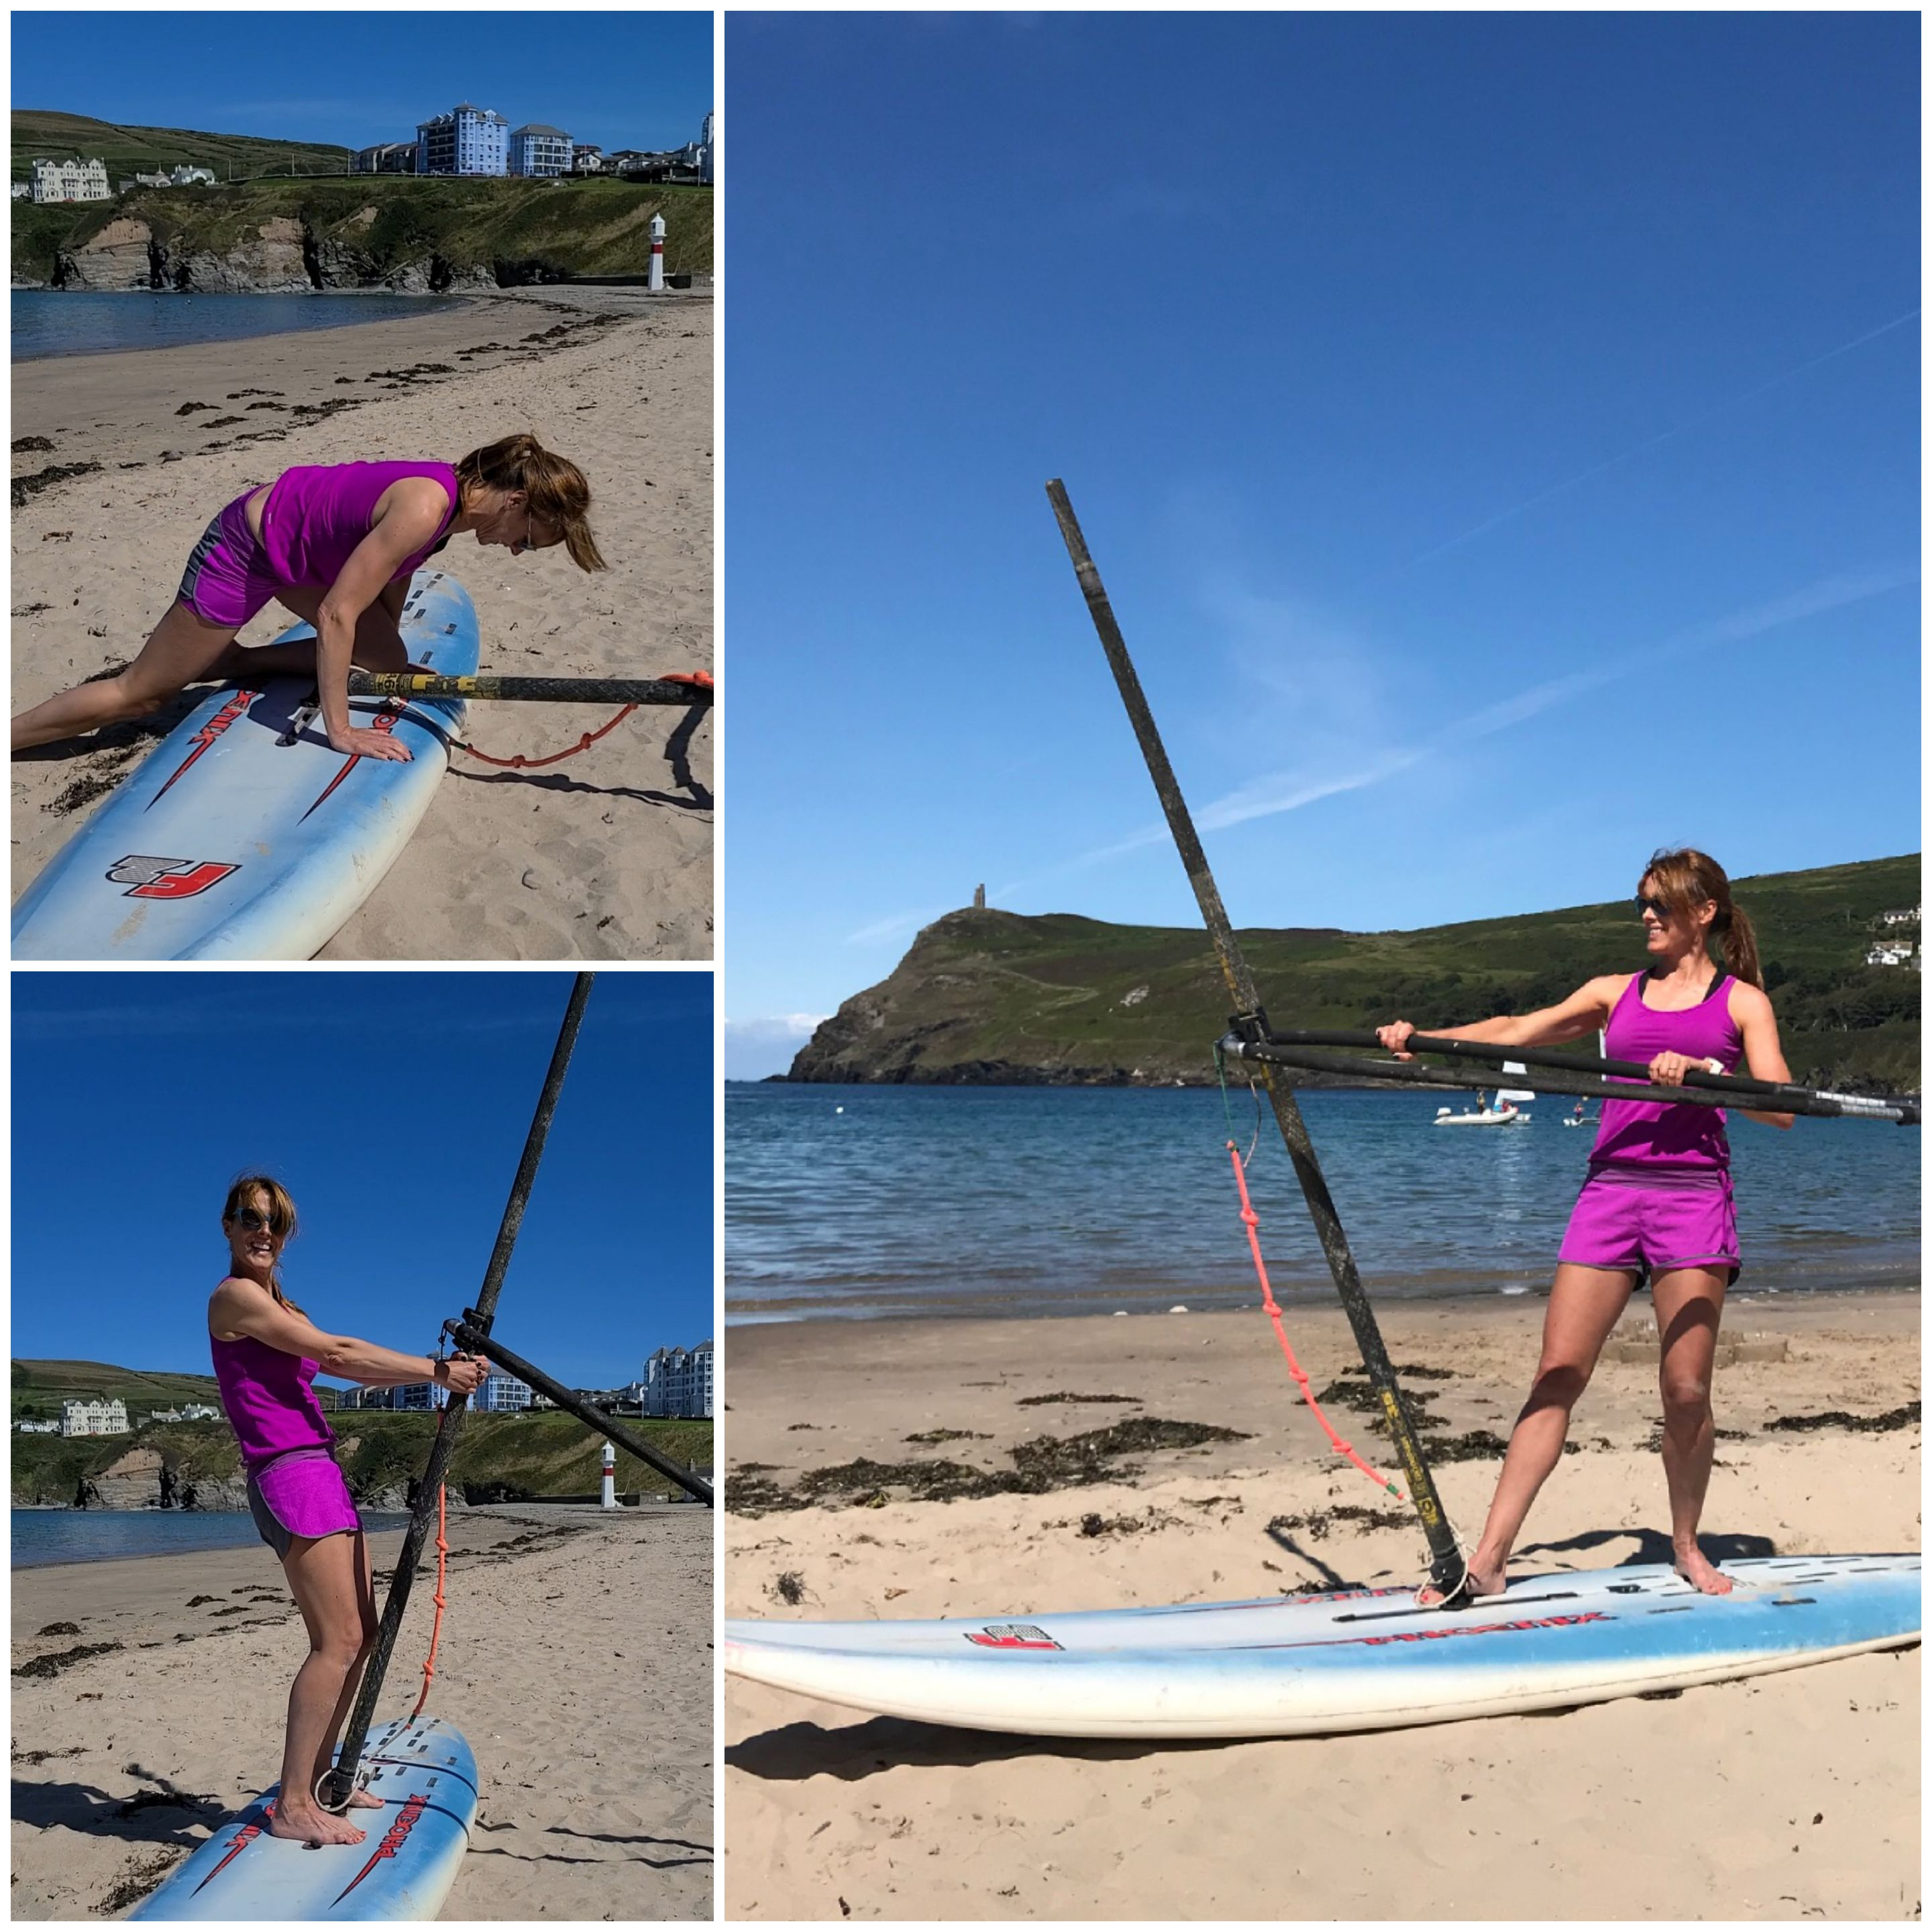 Learning to windsurf in Port Erin